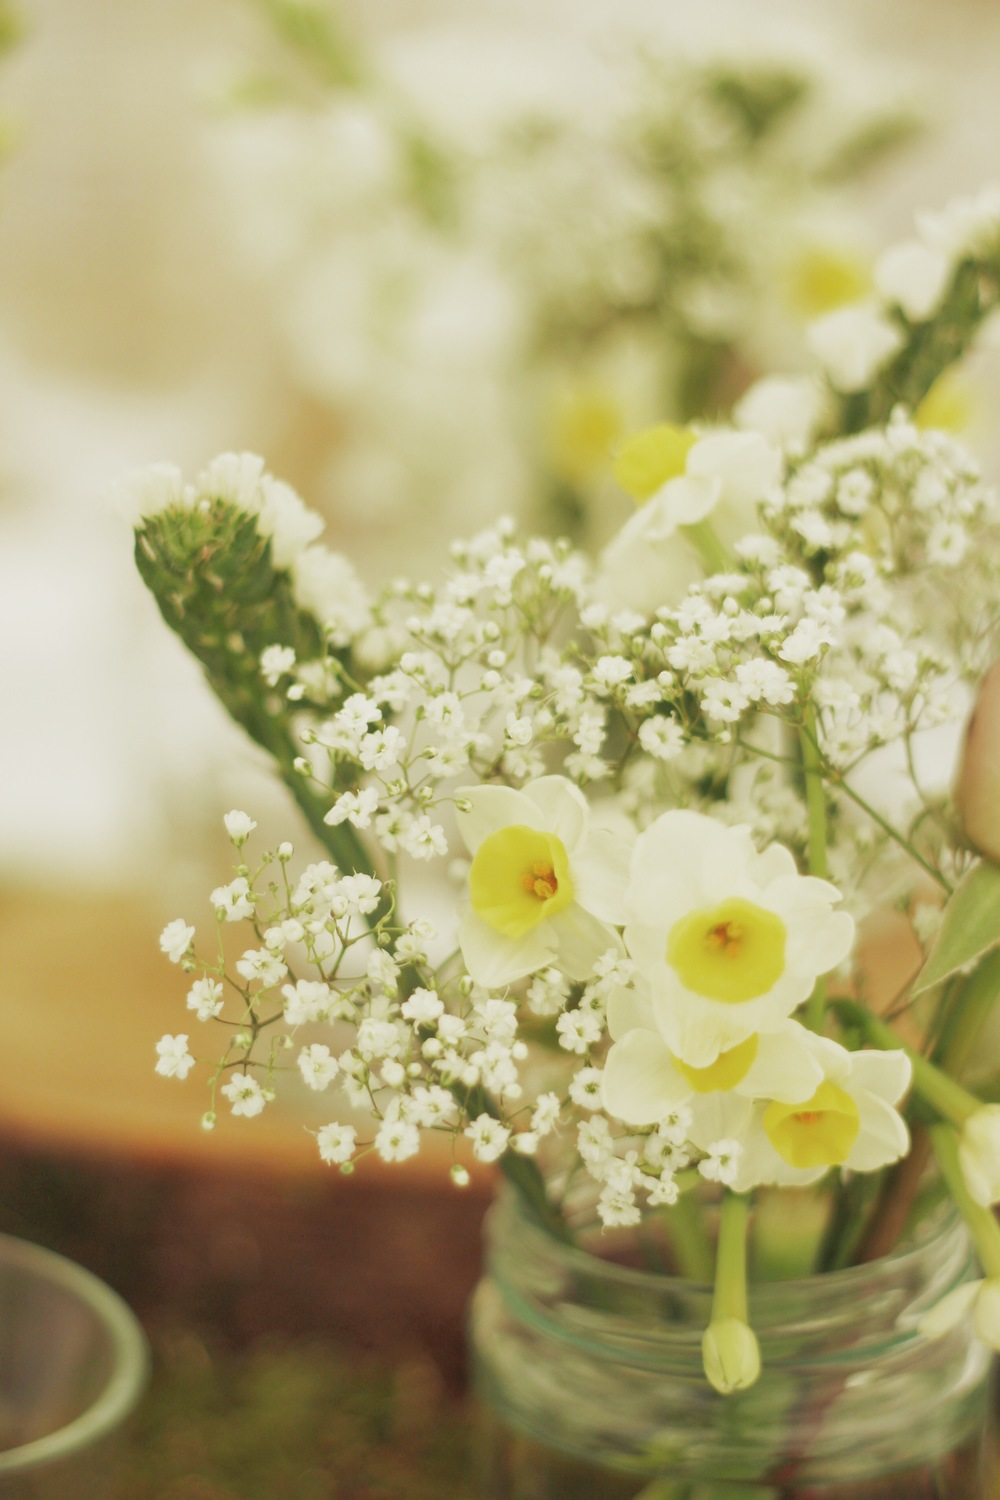 jam jar flowers by Jennifer Pinder with narcissi and gypsophila and statice.JPG